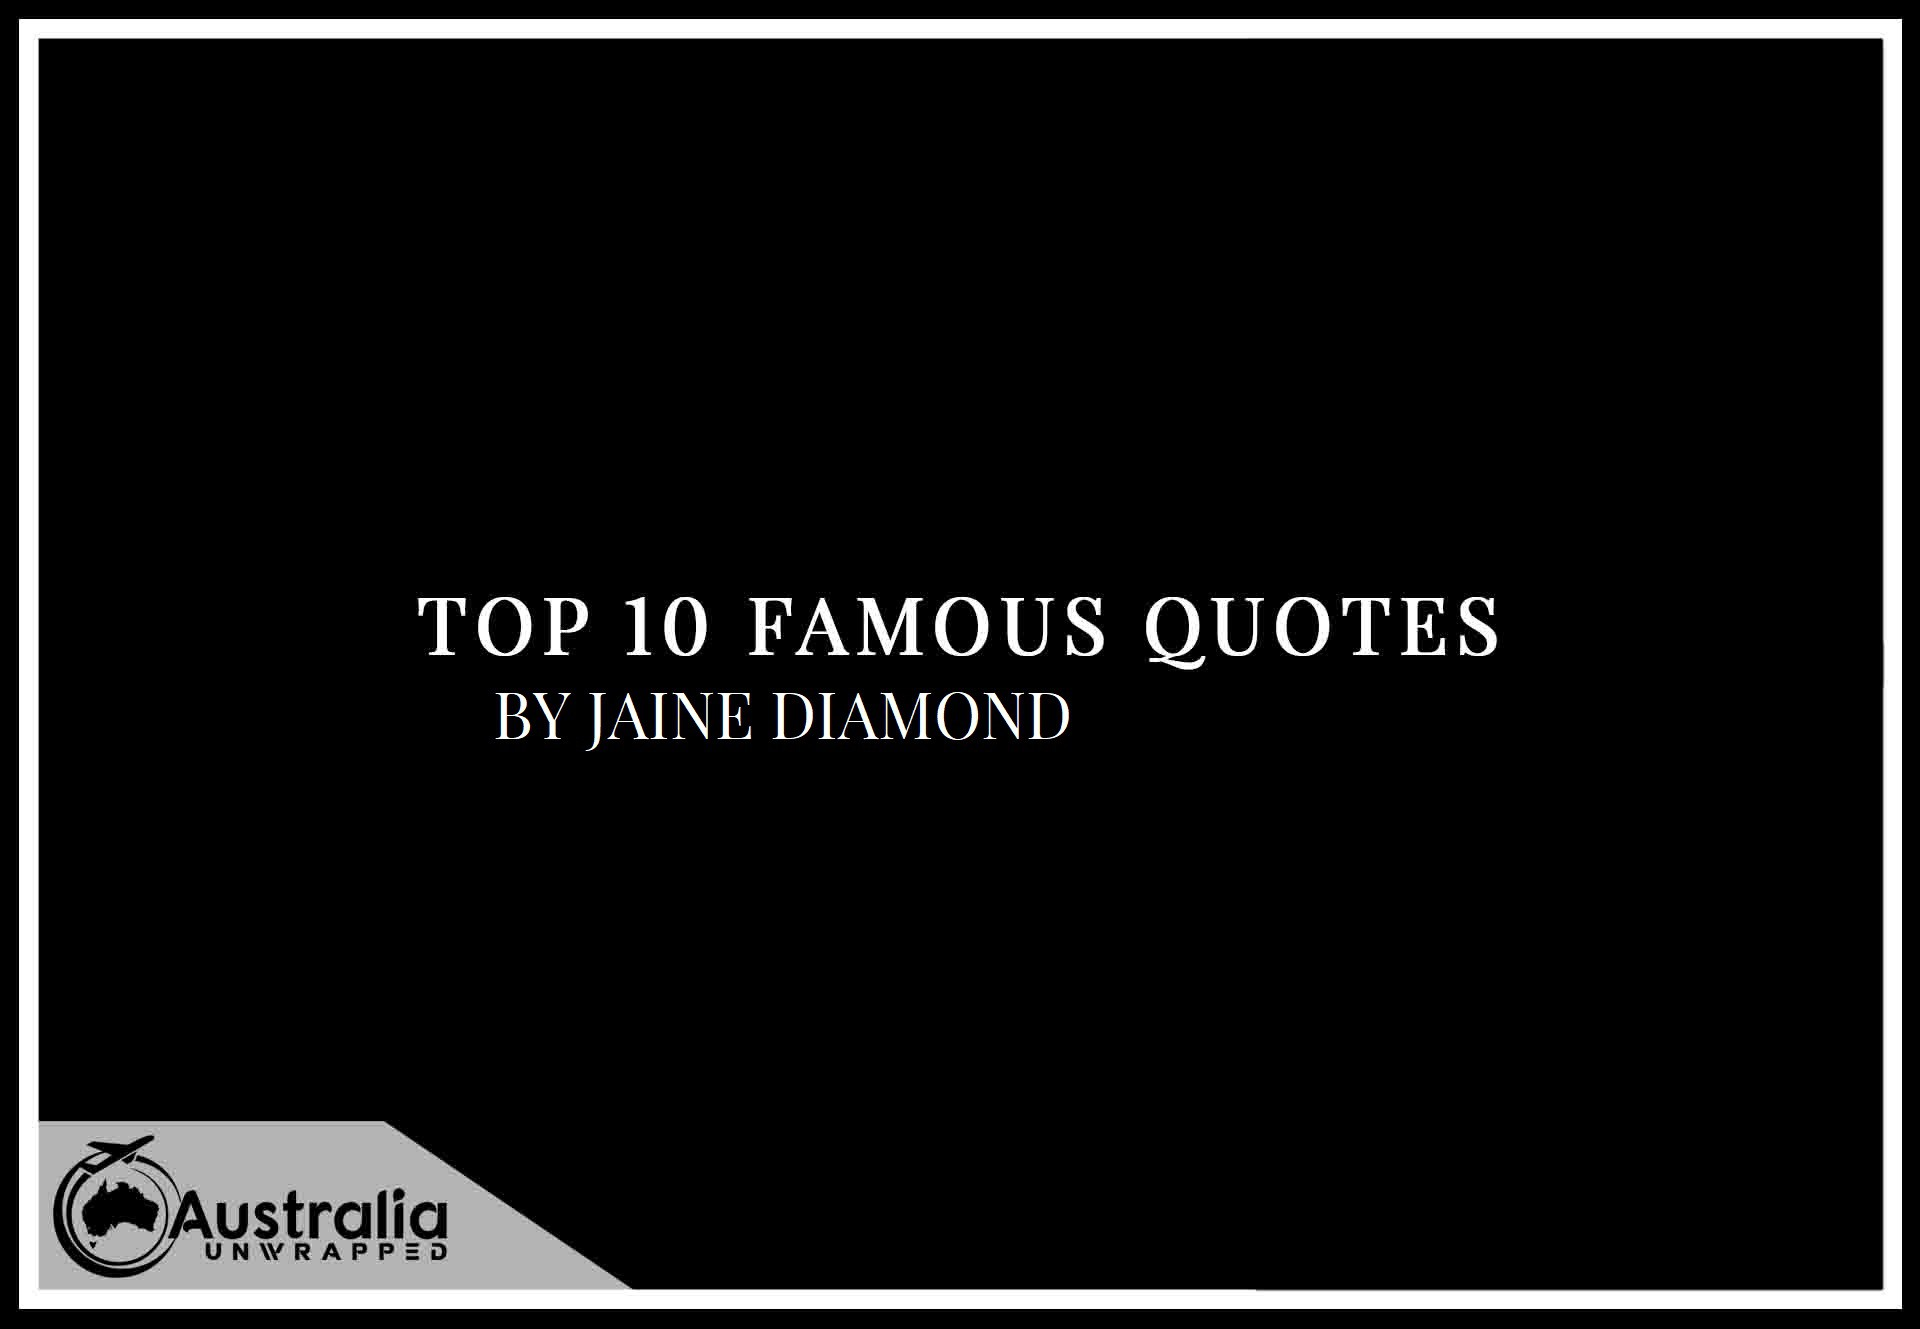 Top 10 Famous Quotes by Author Jaine Diamond